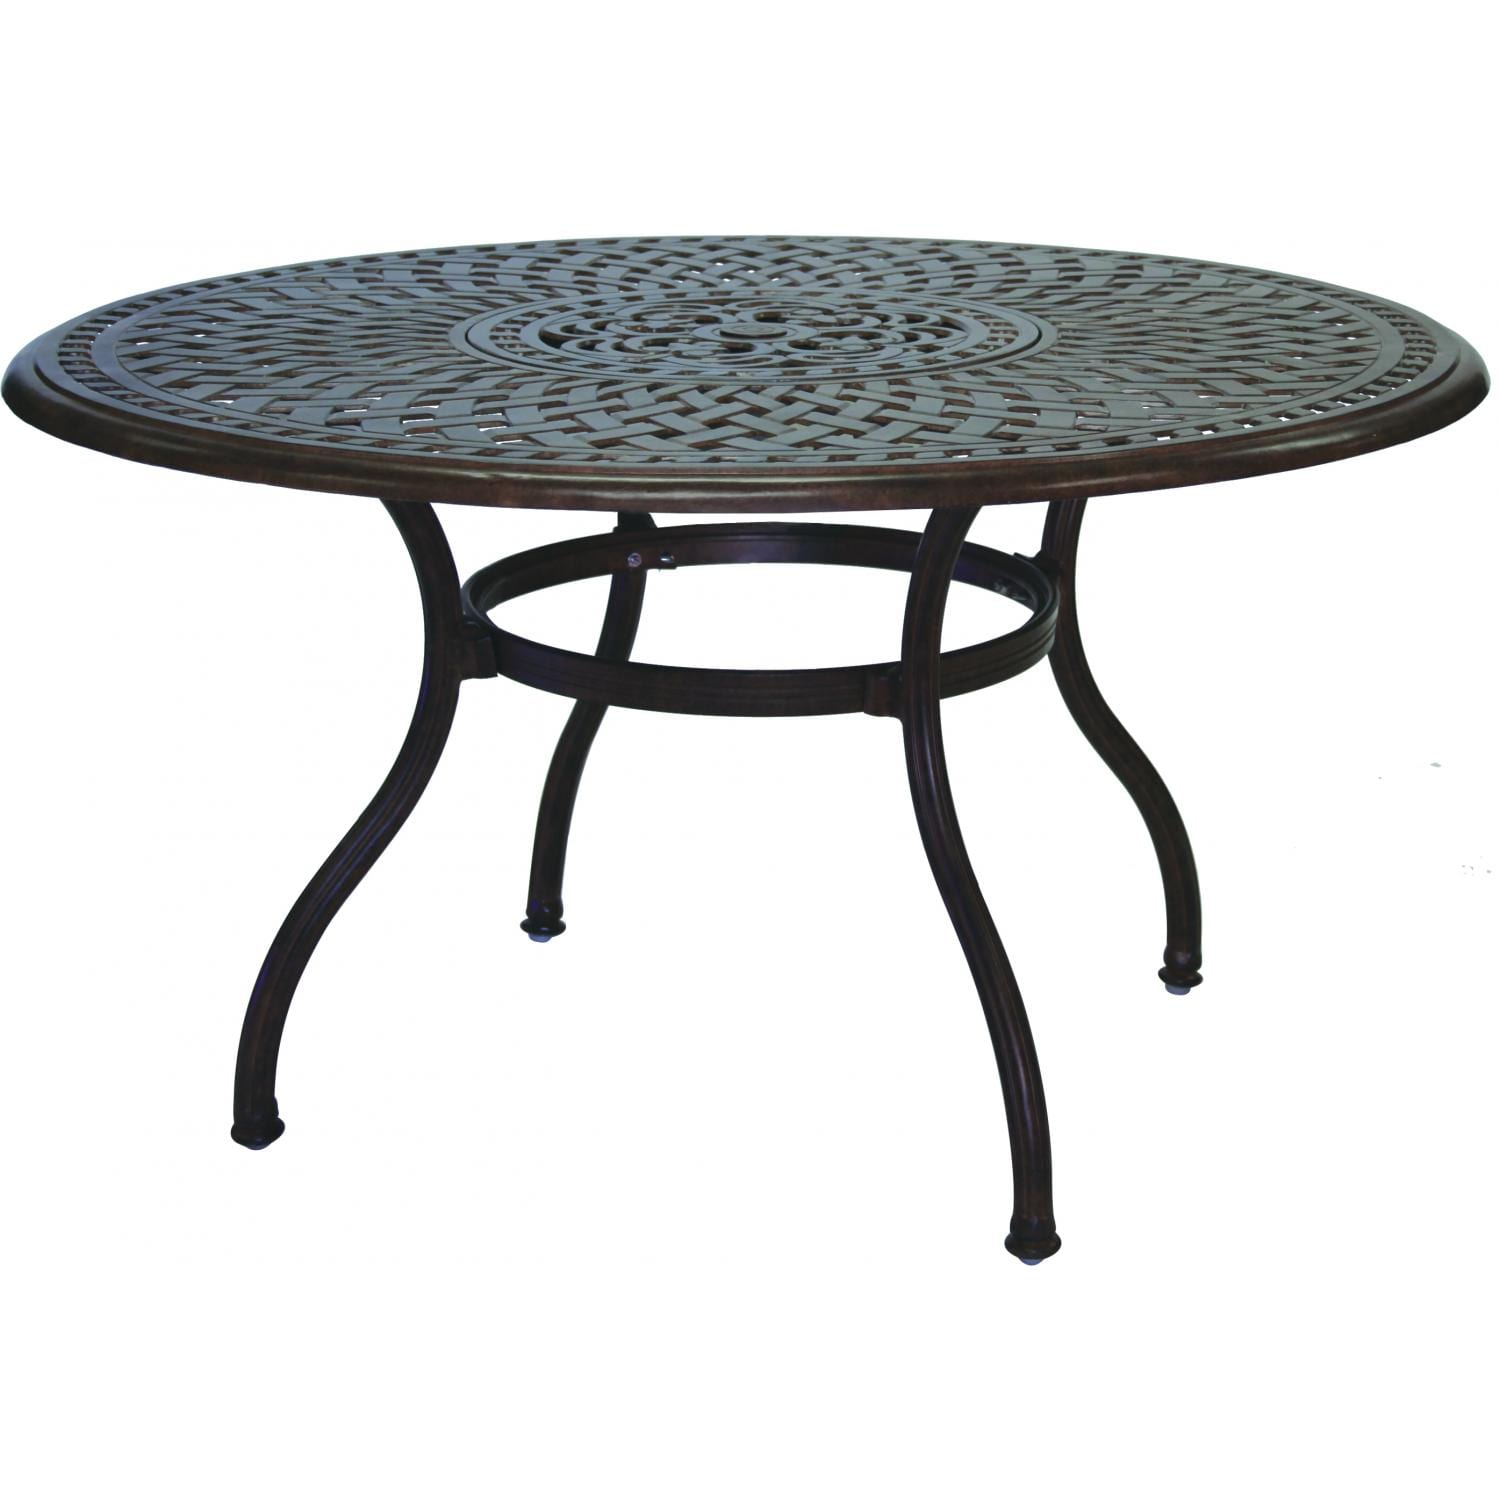 Darlee Series Cast Aluminum Patio Dining Table With Ice Bucket - 52 inch round outdoor dining table